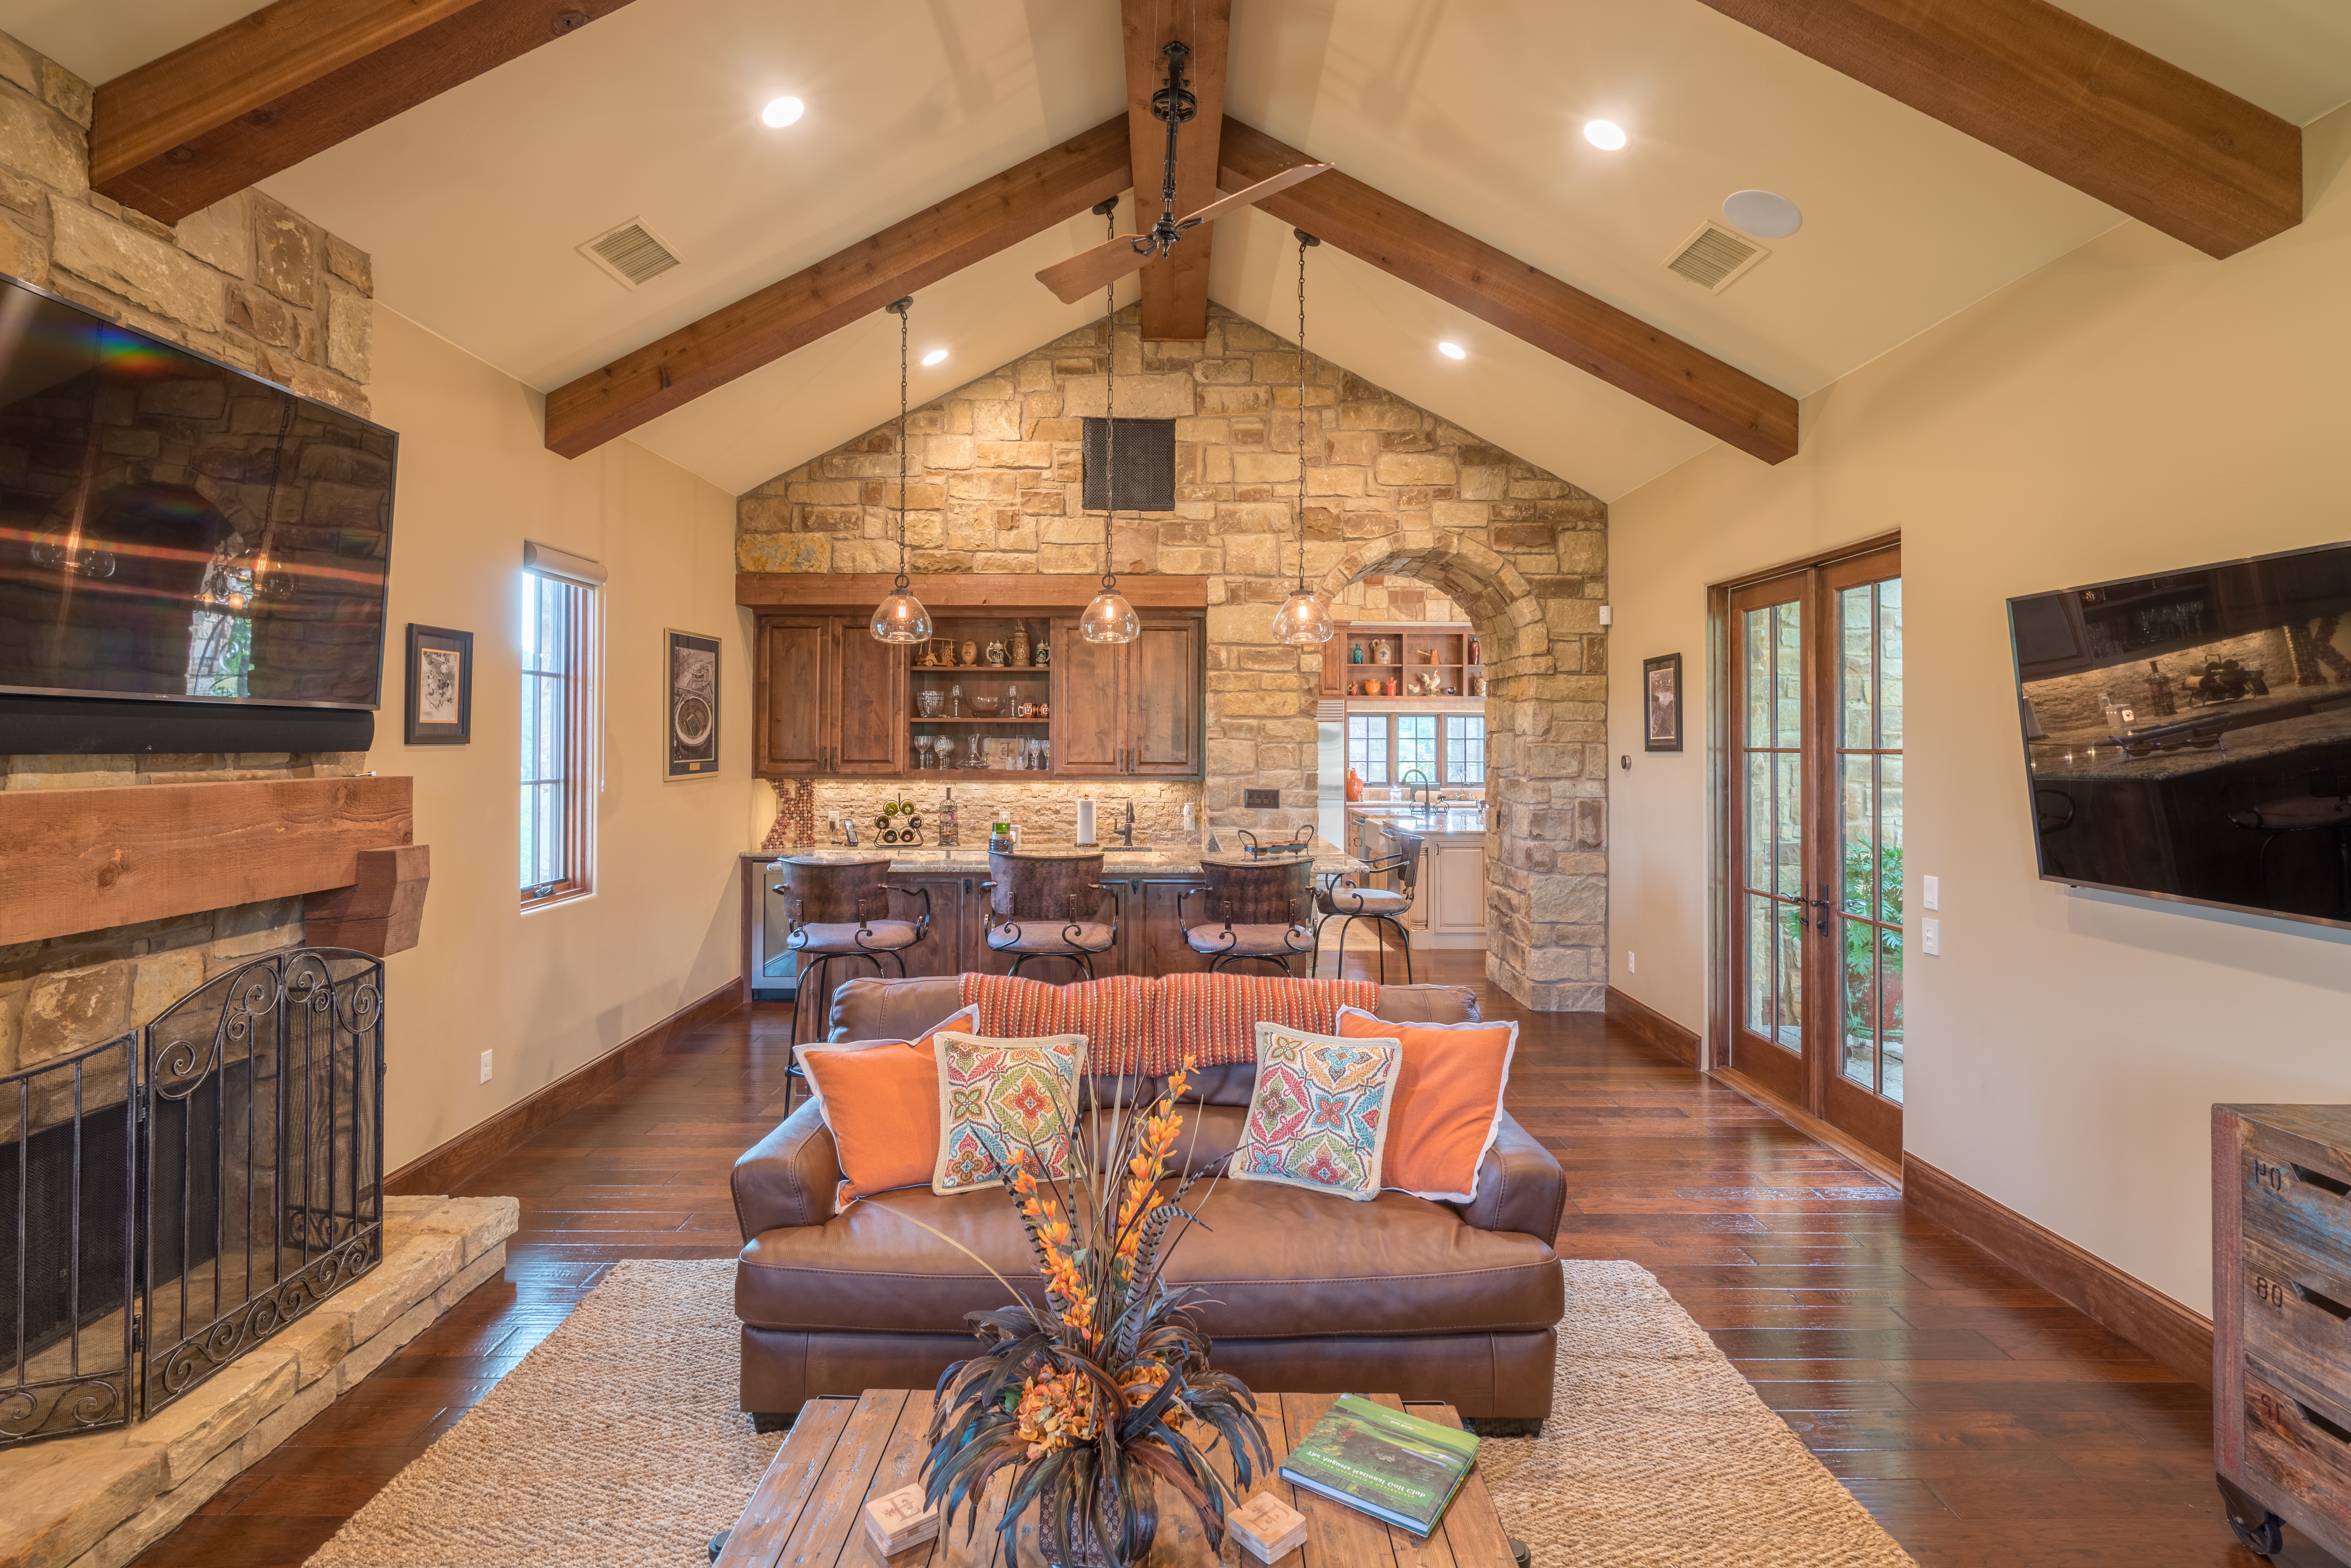 Open Plan Western Living Room And Kitchen Combo With Exposed Beam Vaulted Ceiling (View 8 of 18)